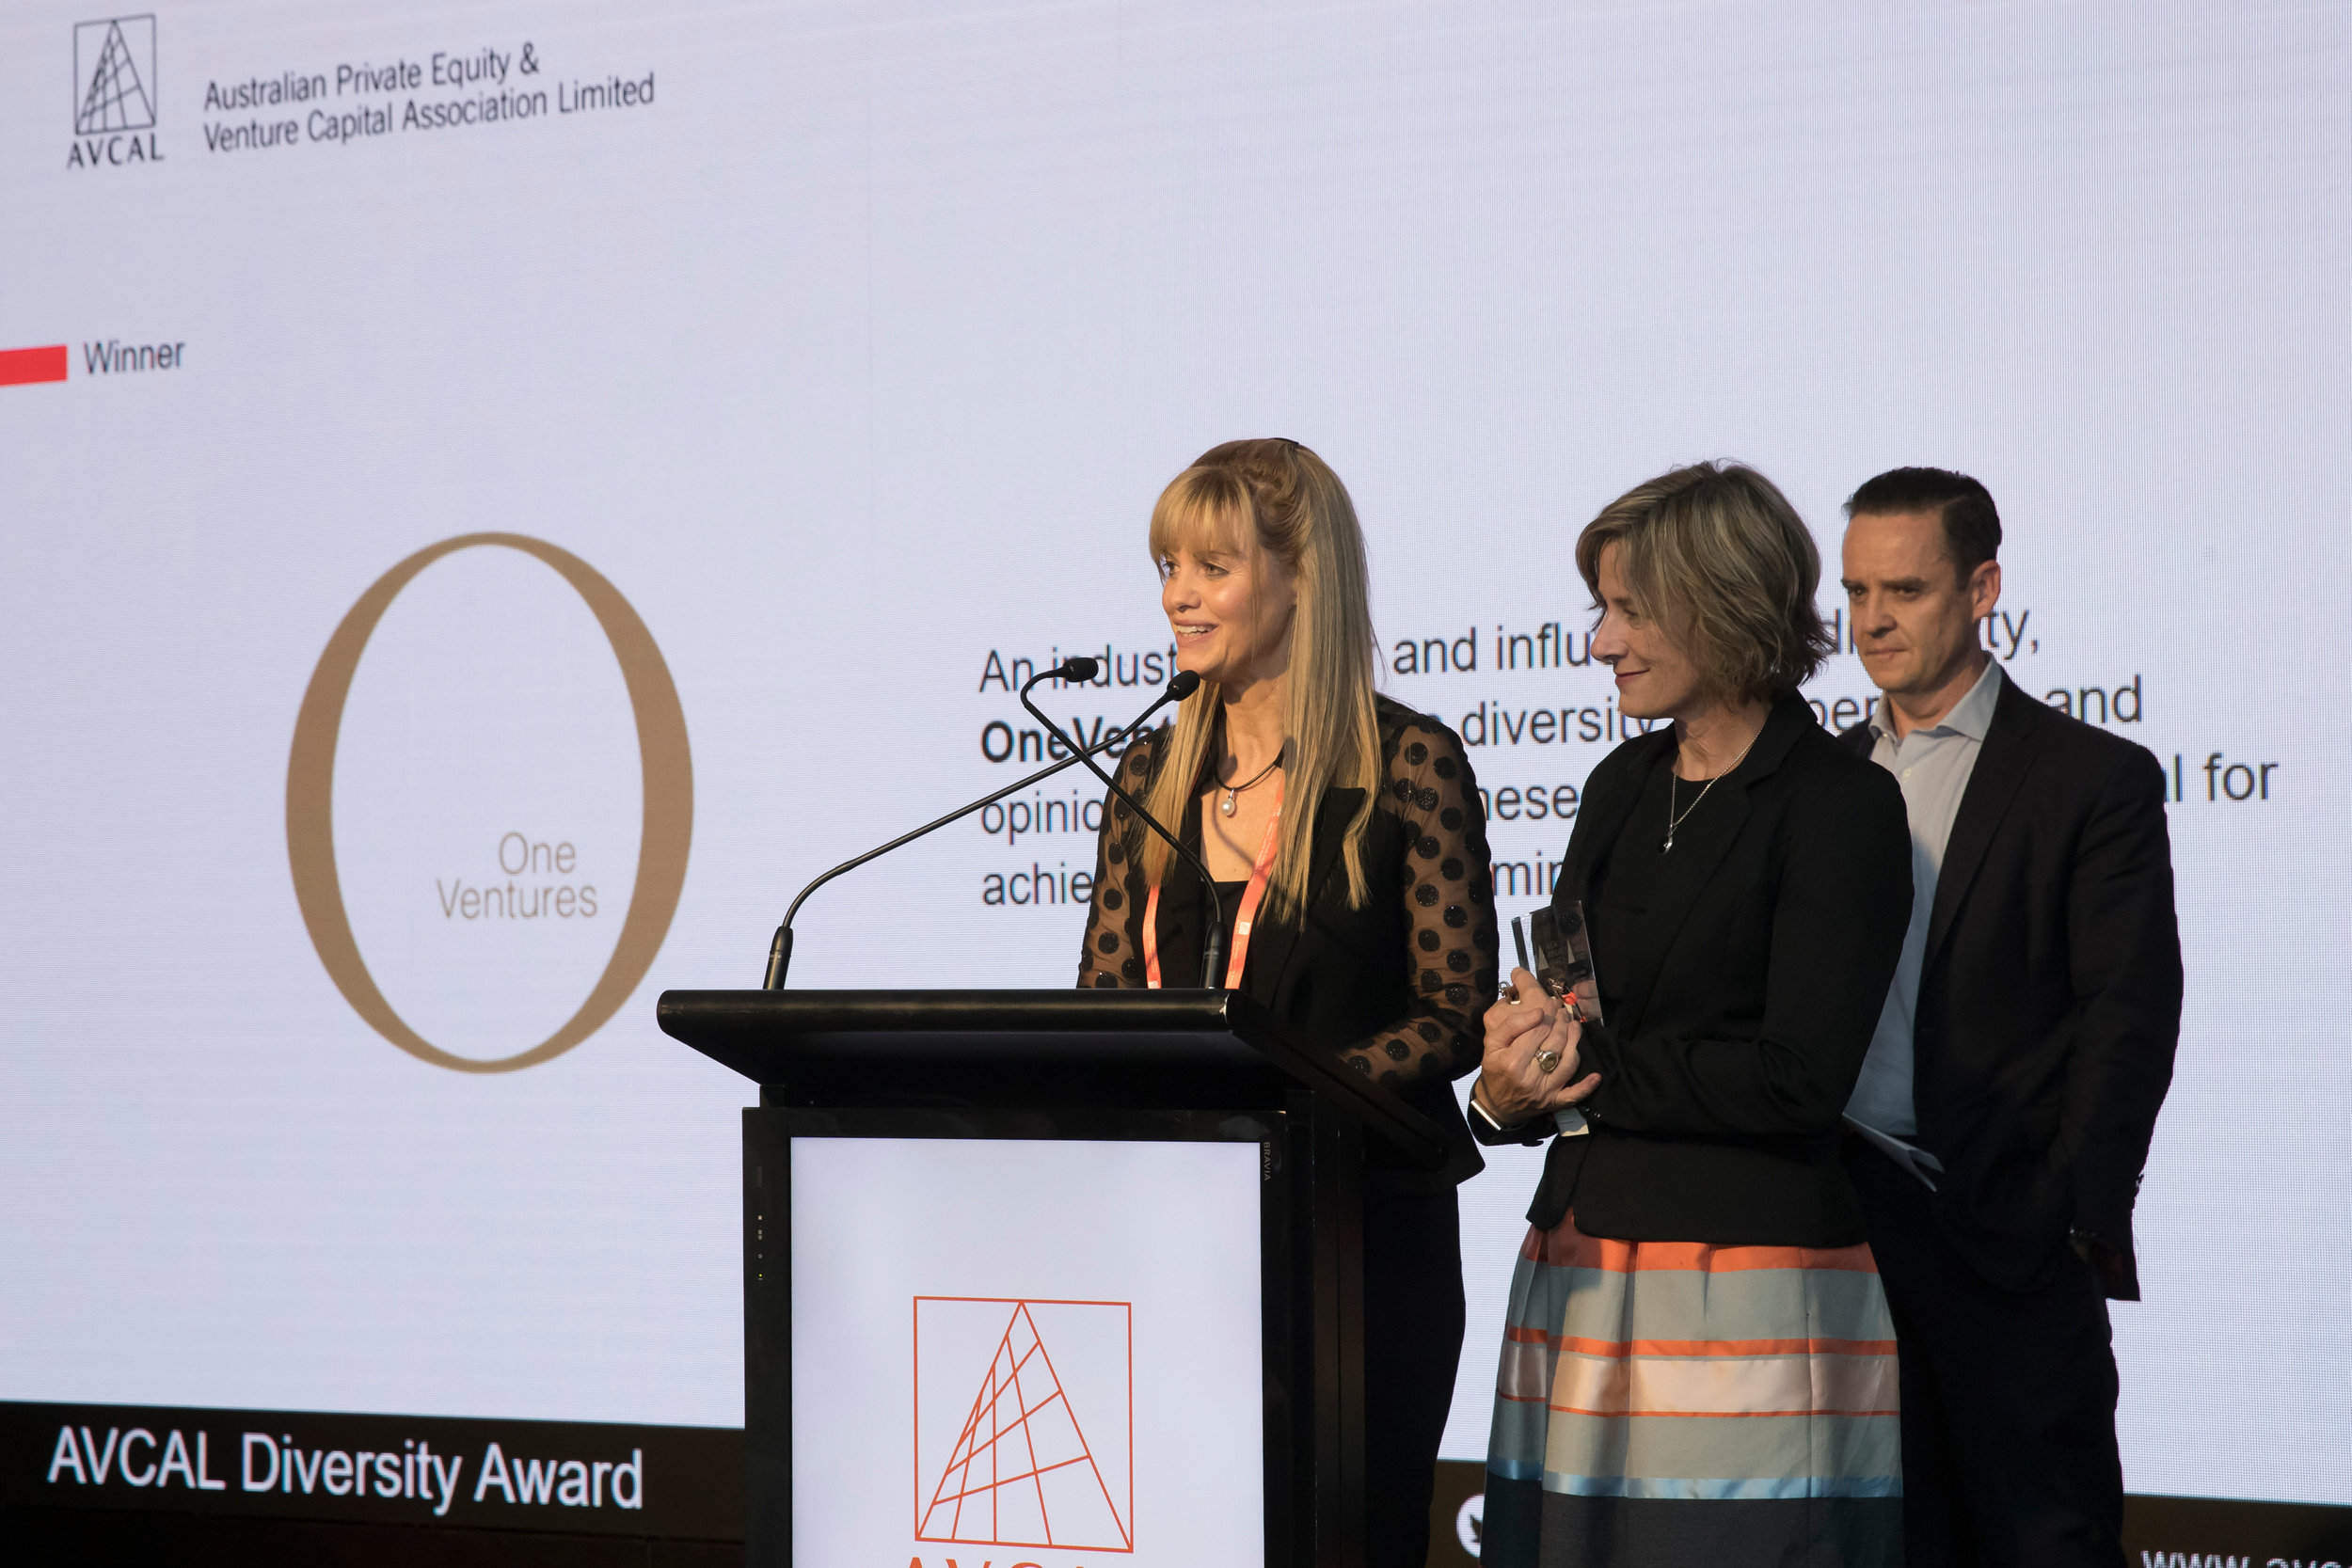 OneVentures' Managing Partners Dr Michelle Deaker and Anne-Marie Birkill accept the 2017 AVCAL Workplace Diversity Award on behalf of OneVentures.